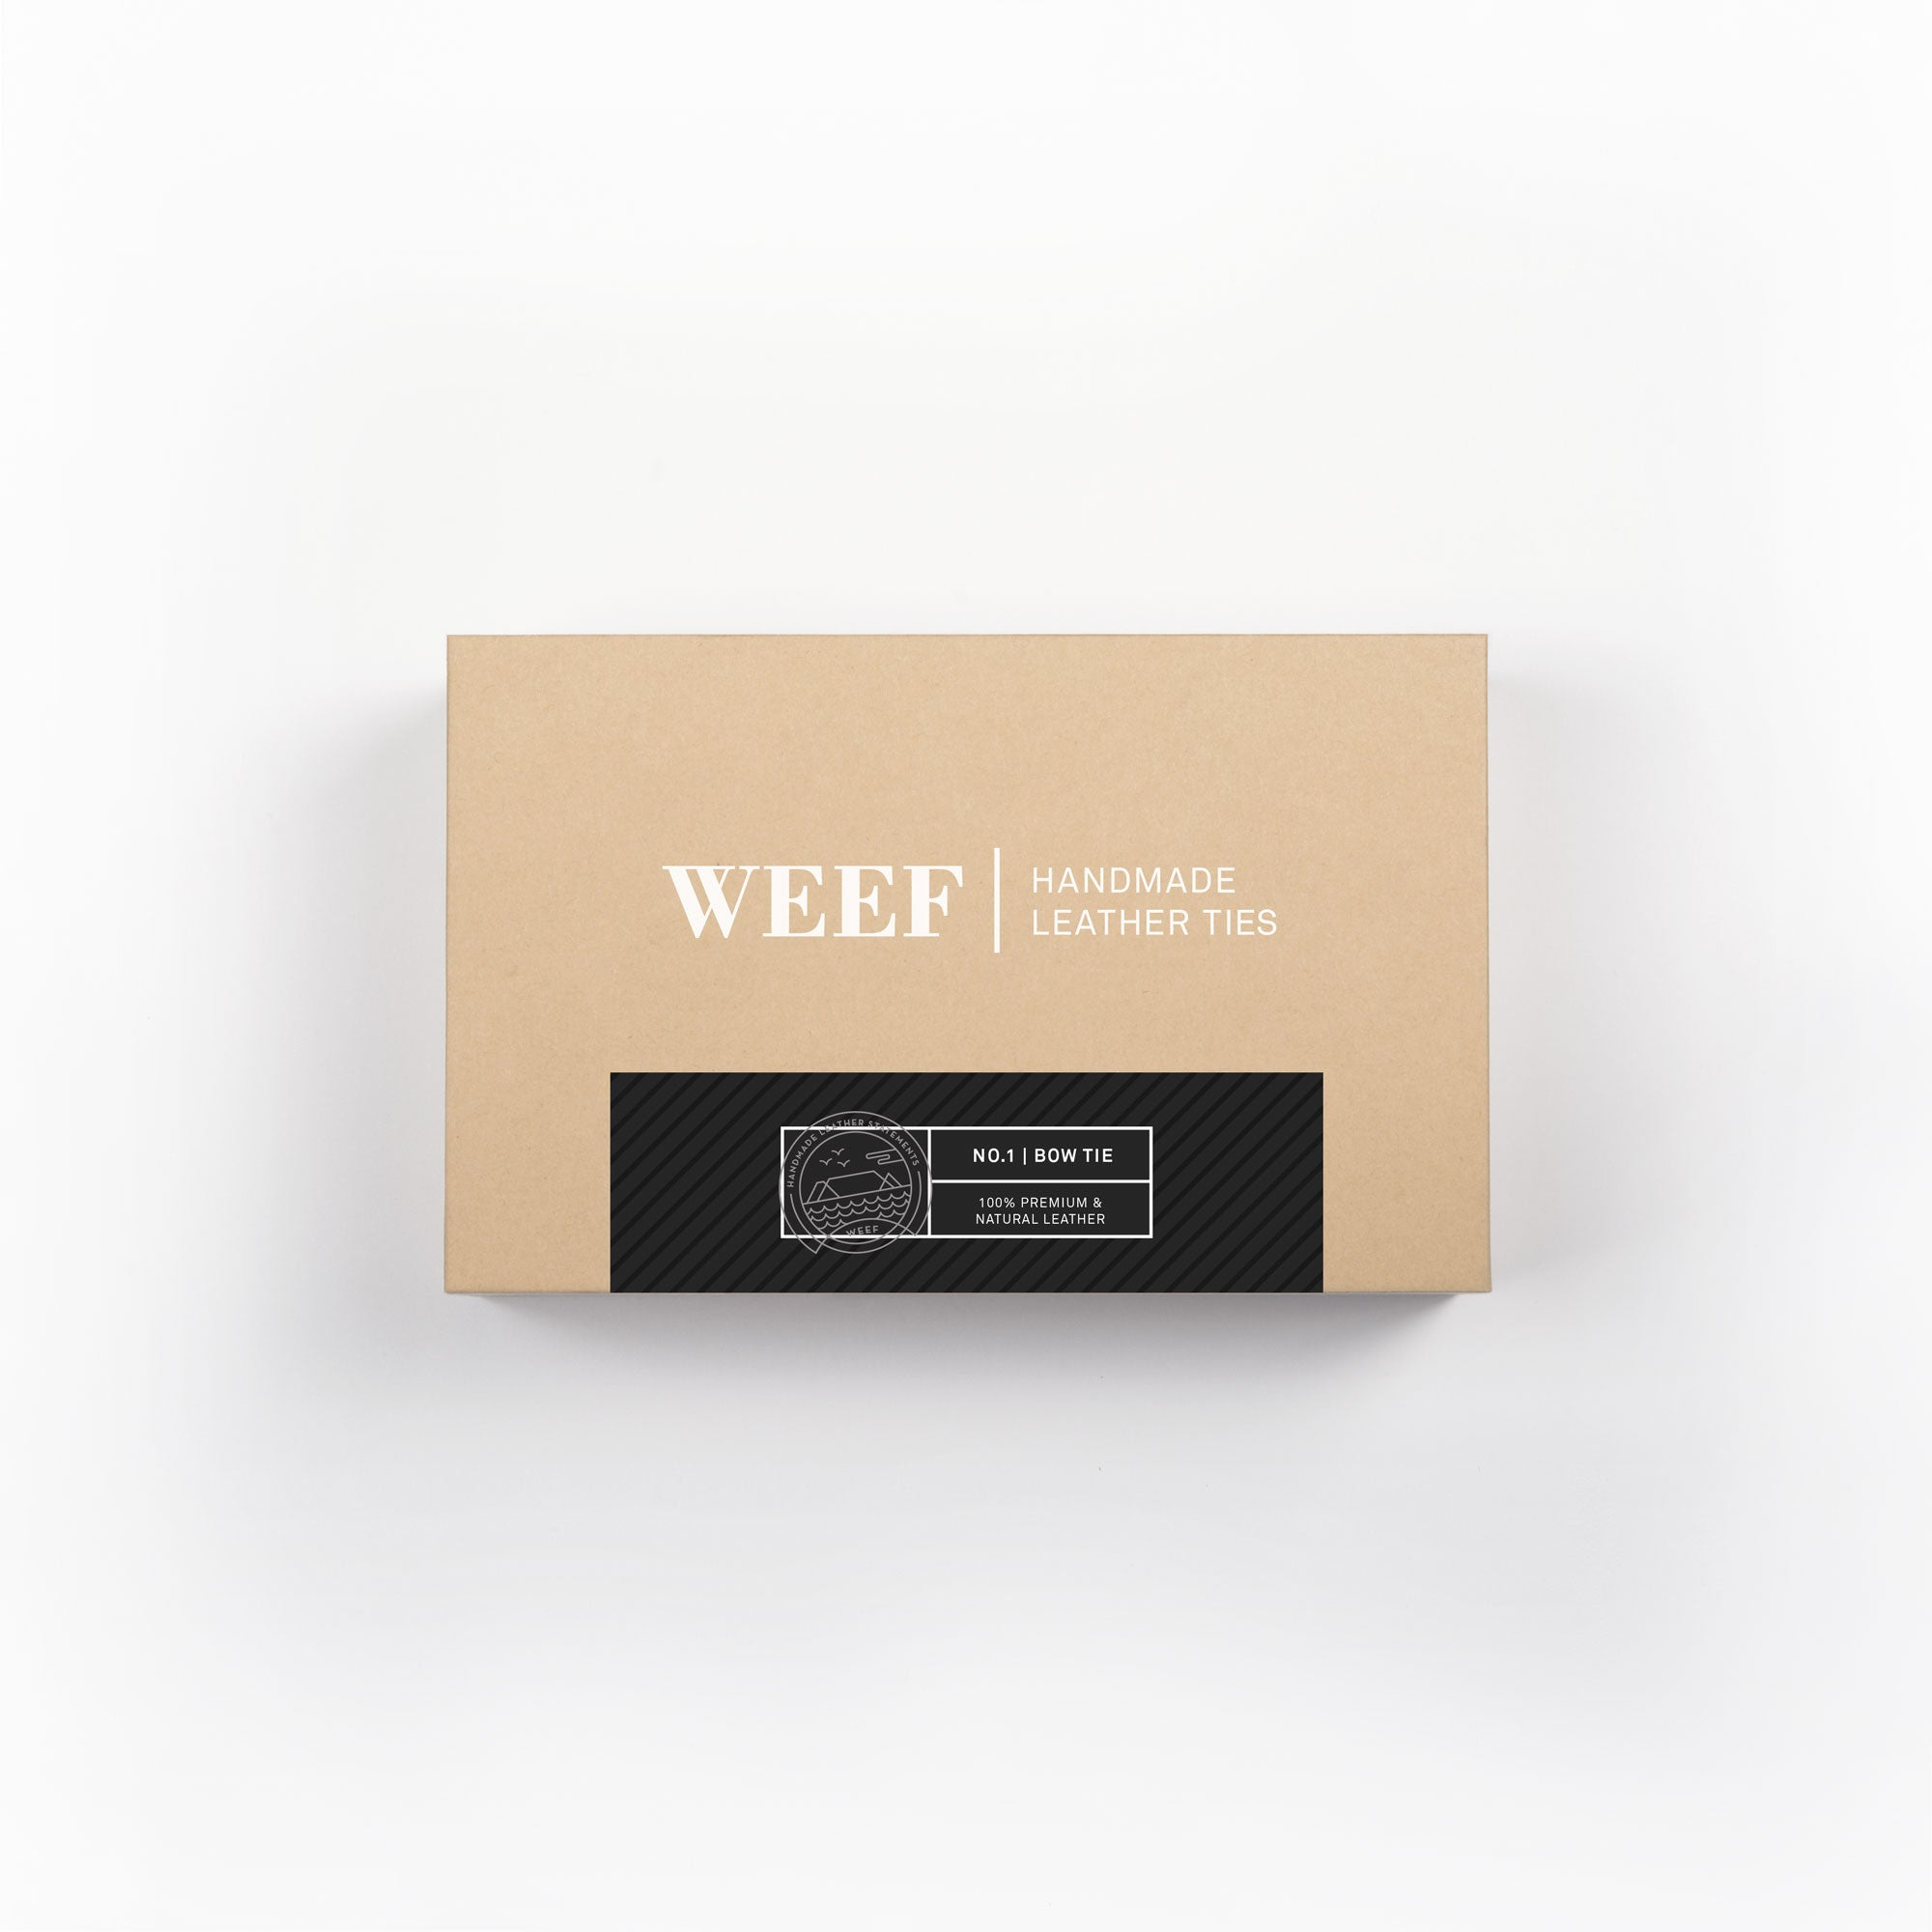 This is the premium packaging box of the matt black WEEF handmade leather bow tie.